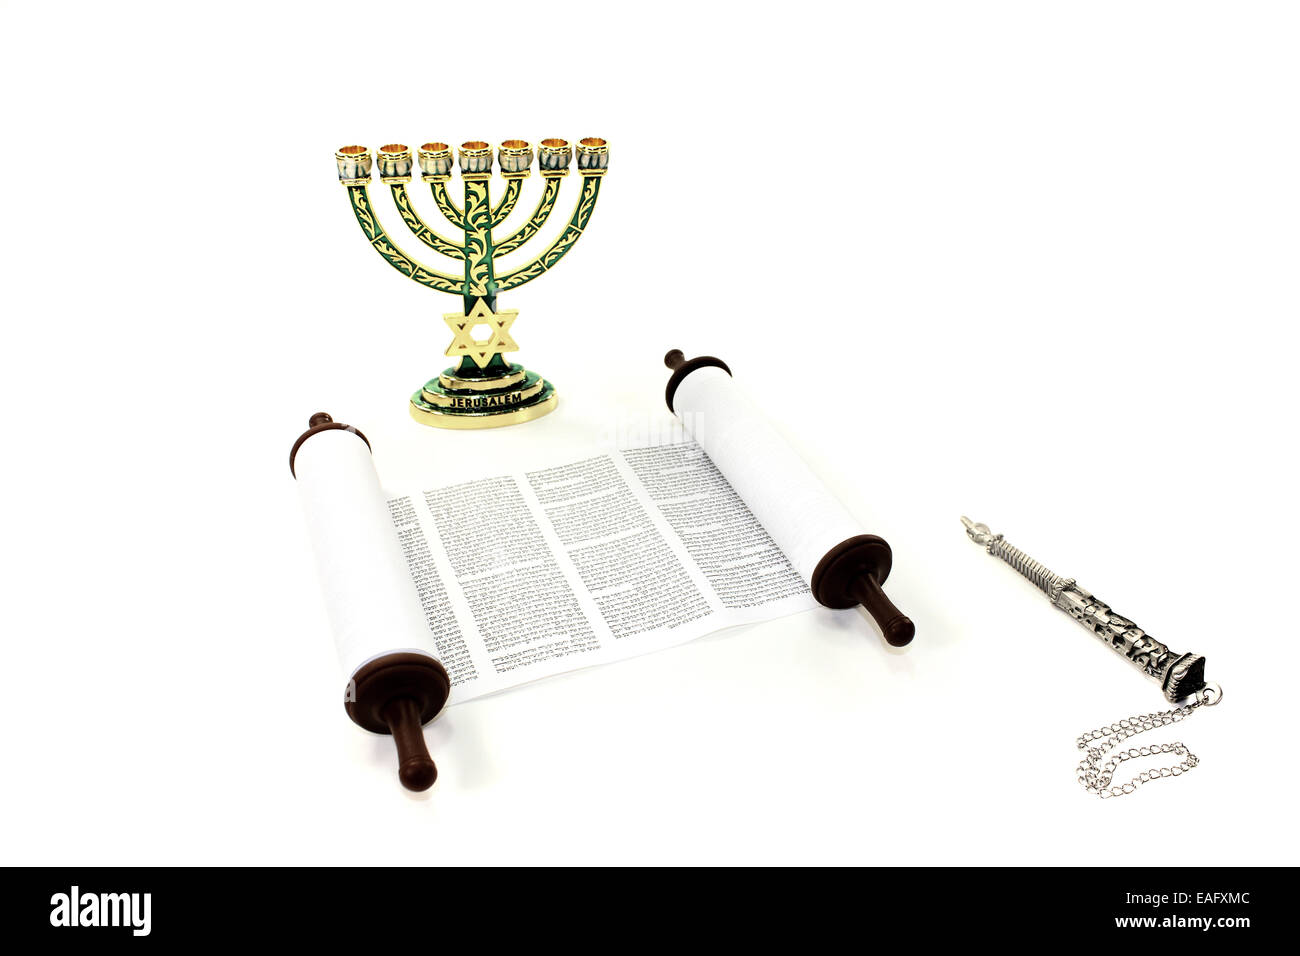 Torah scroll with menorah and pointer on light background - Stock Image